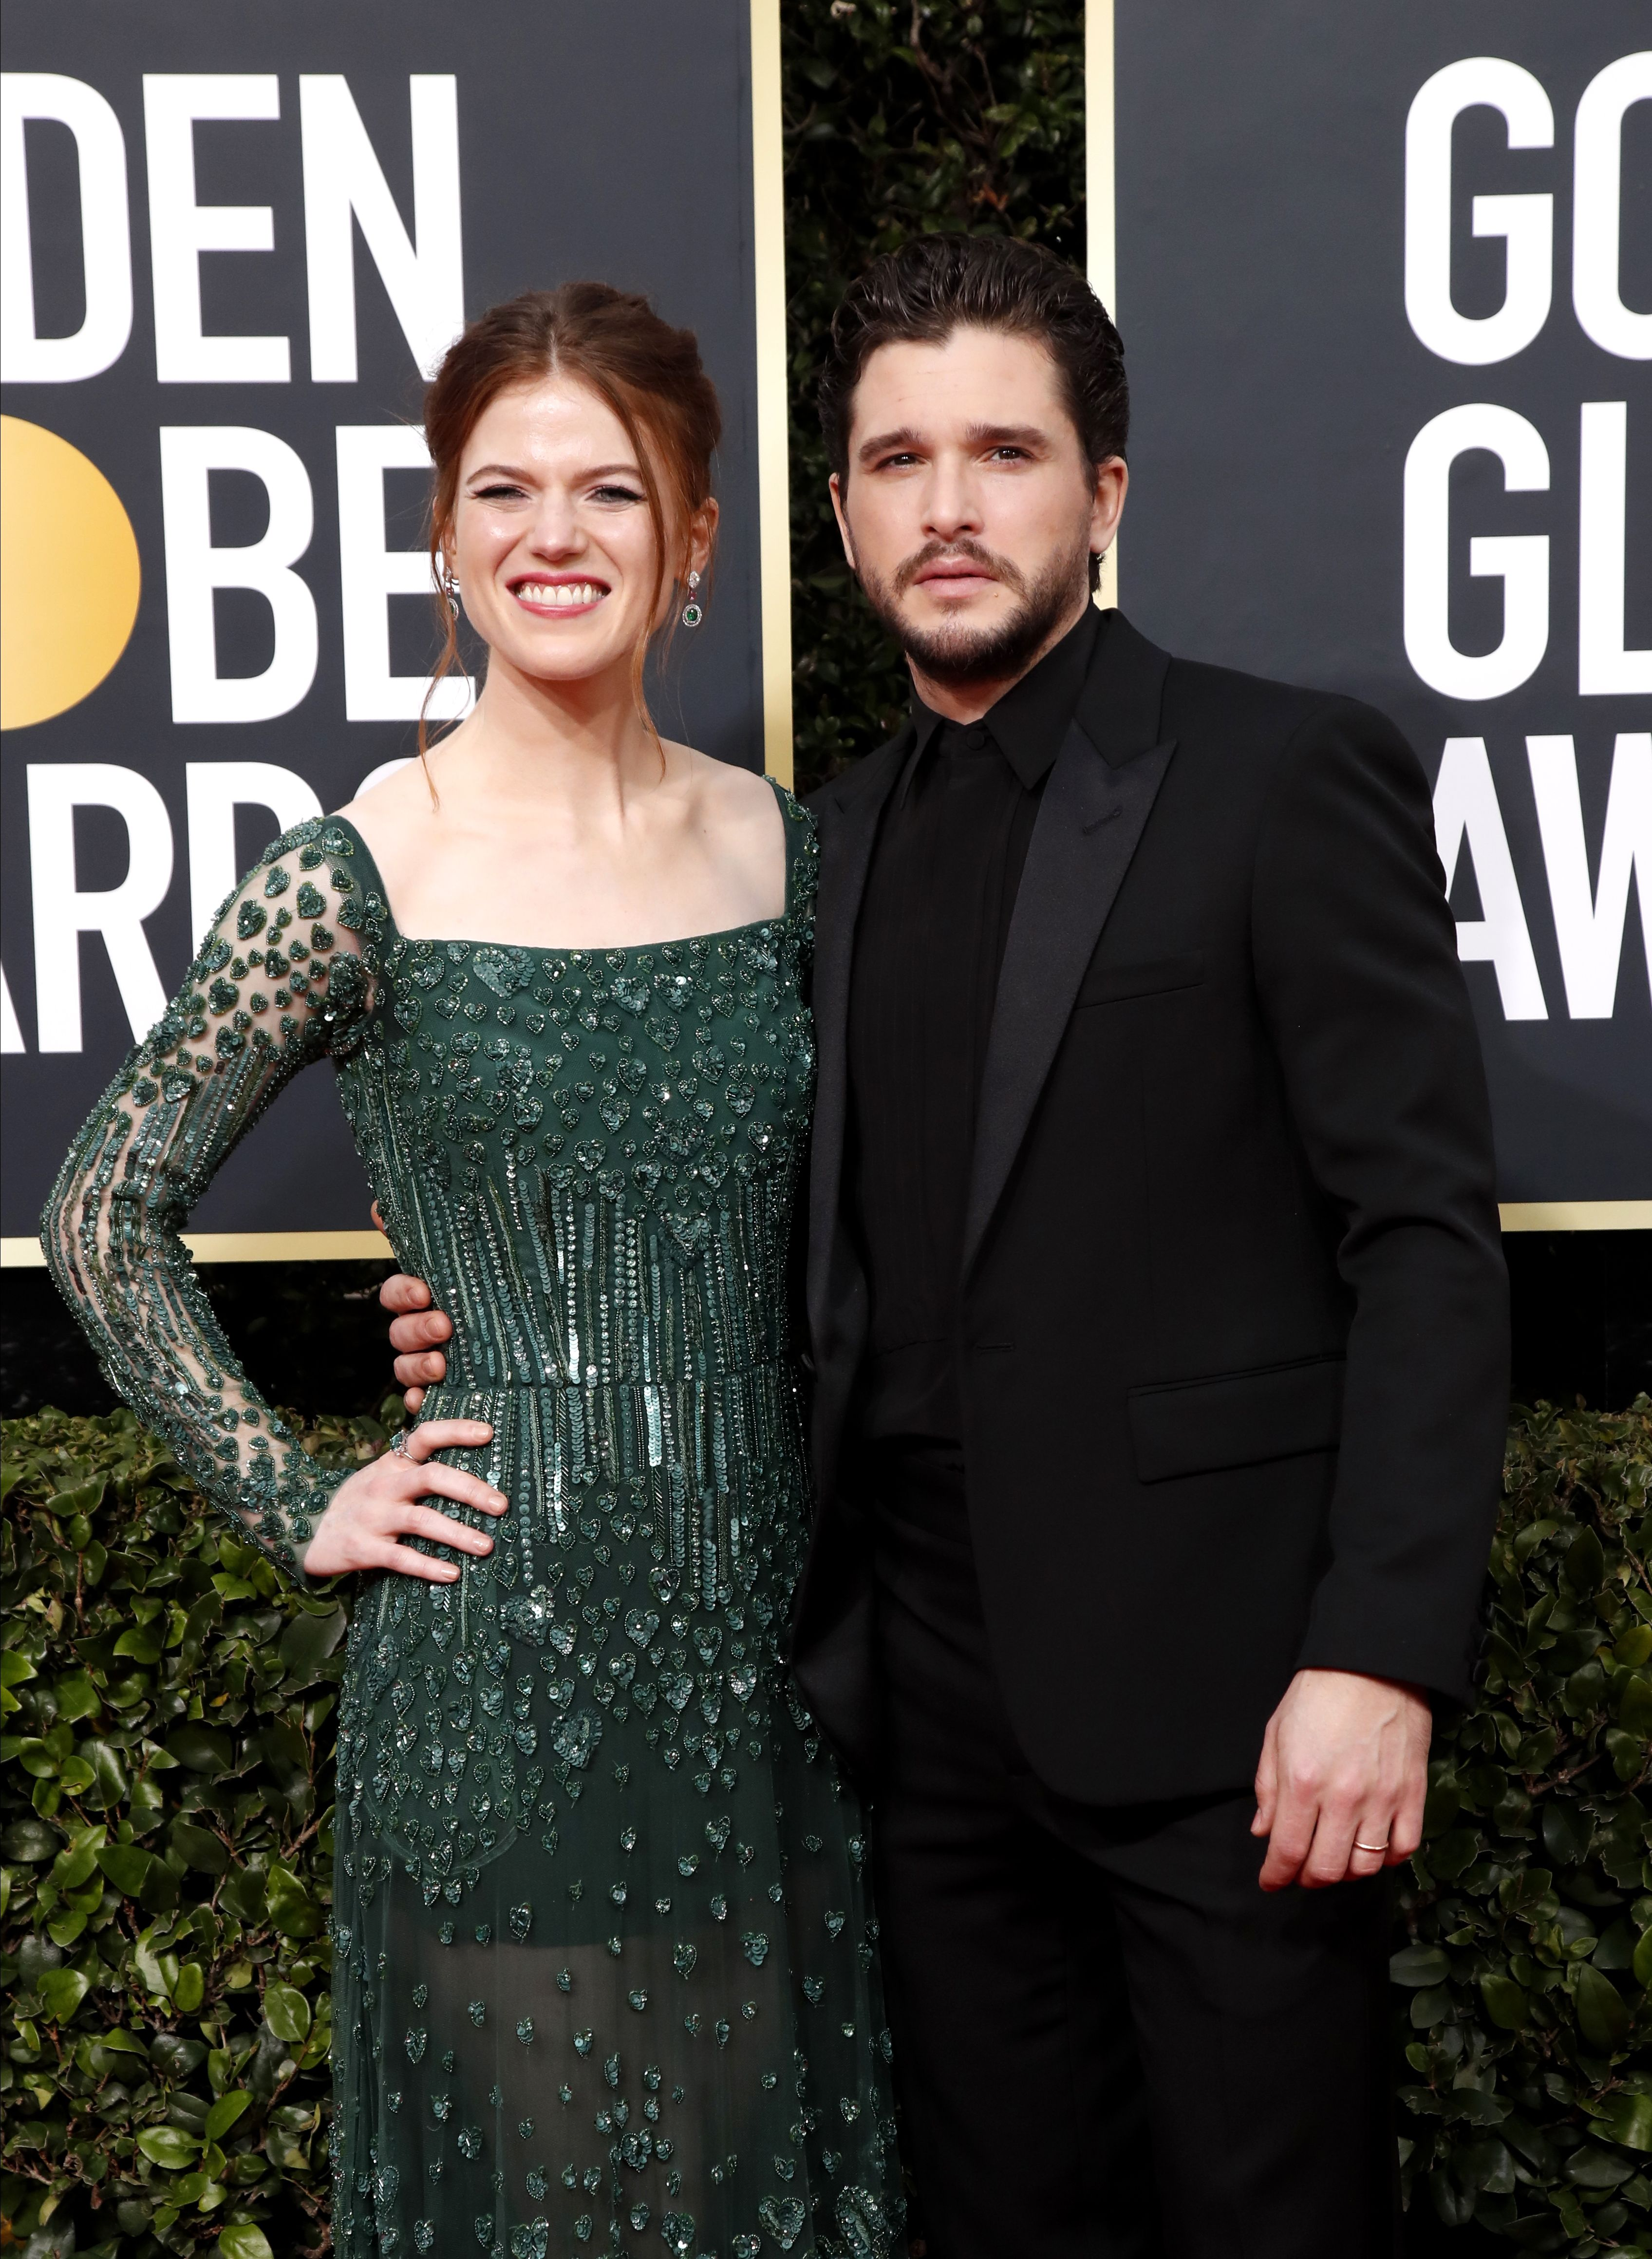 Rose Leslie (L) and Kit Harington arrive for the 77th annual Golden Globe Awards ceremony at the Beverly Hilton Hotel, in Beverly Hills, California, USA, 05 January 2020.Arrivals - 77th Golden Globe Awards, Beverly Hills, USA - 05 Jan 2020